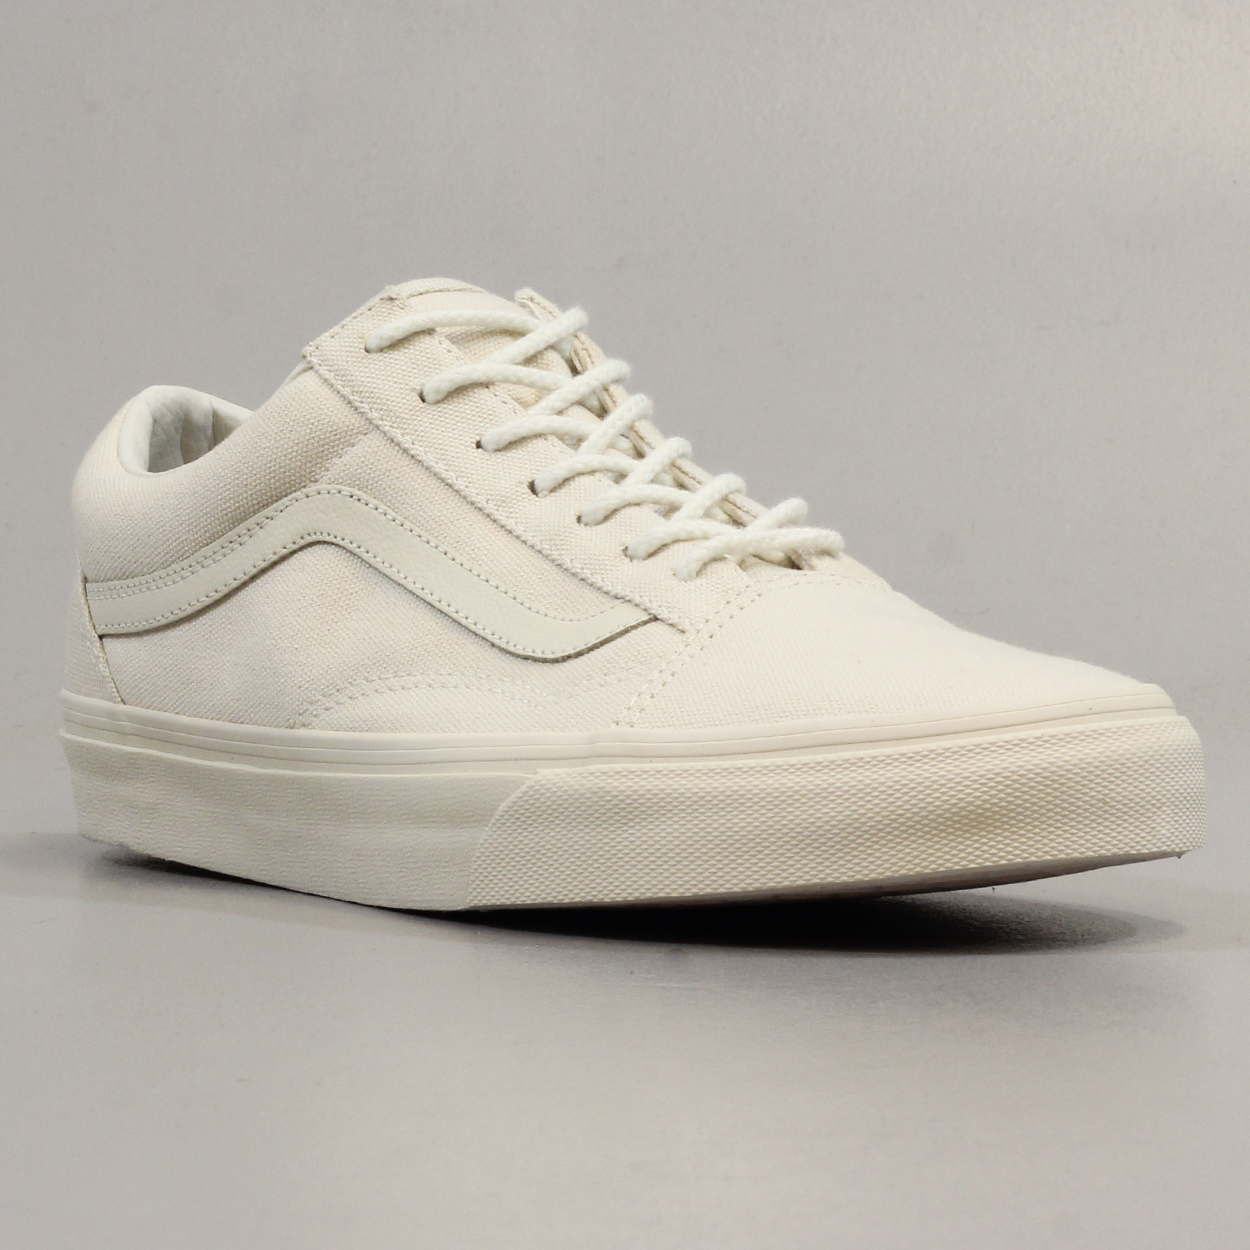 c7e7443f1b Vans timeless Old Skool model with classic CA styling and a Vansguard  finish.